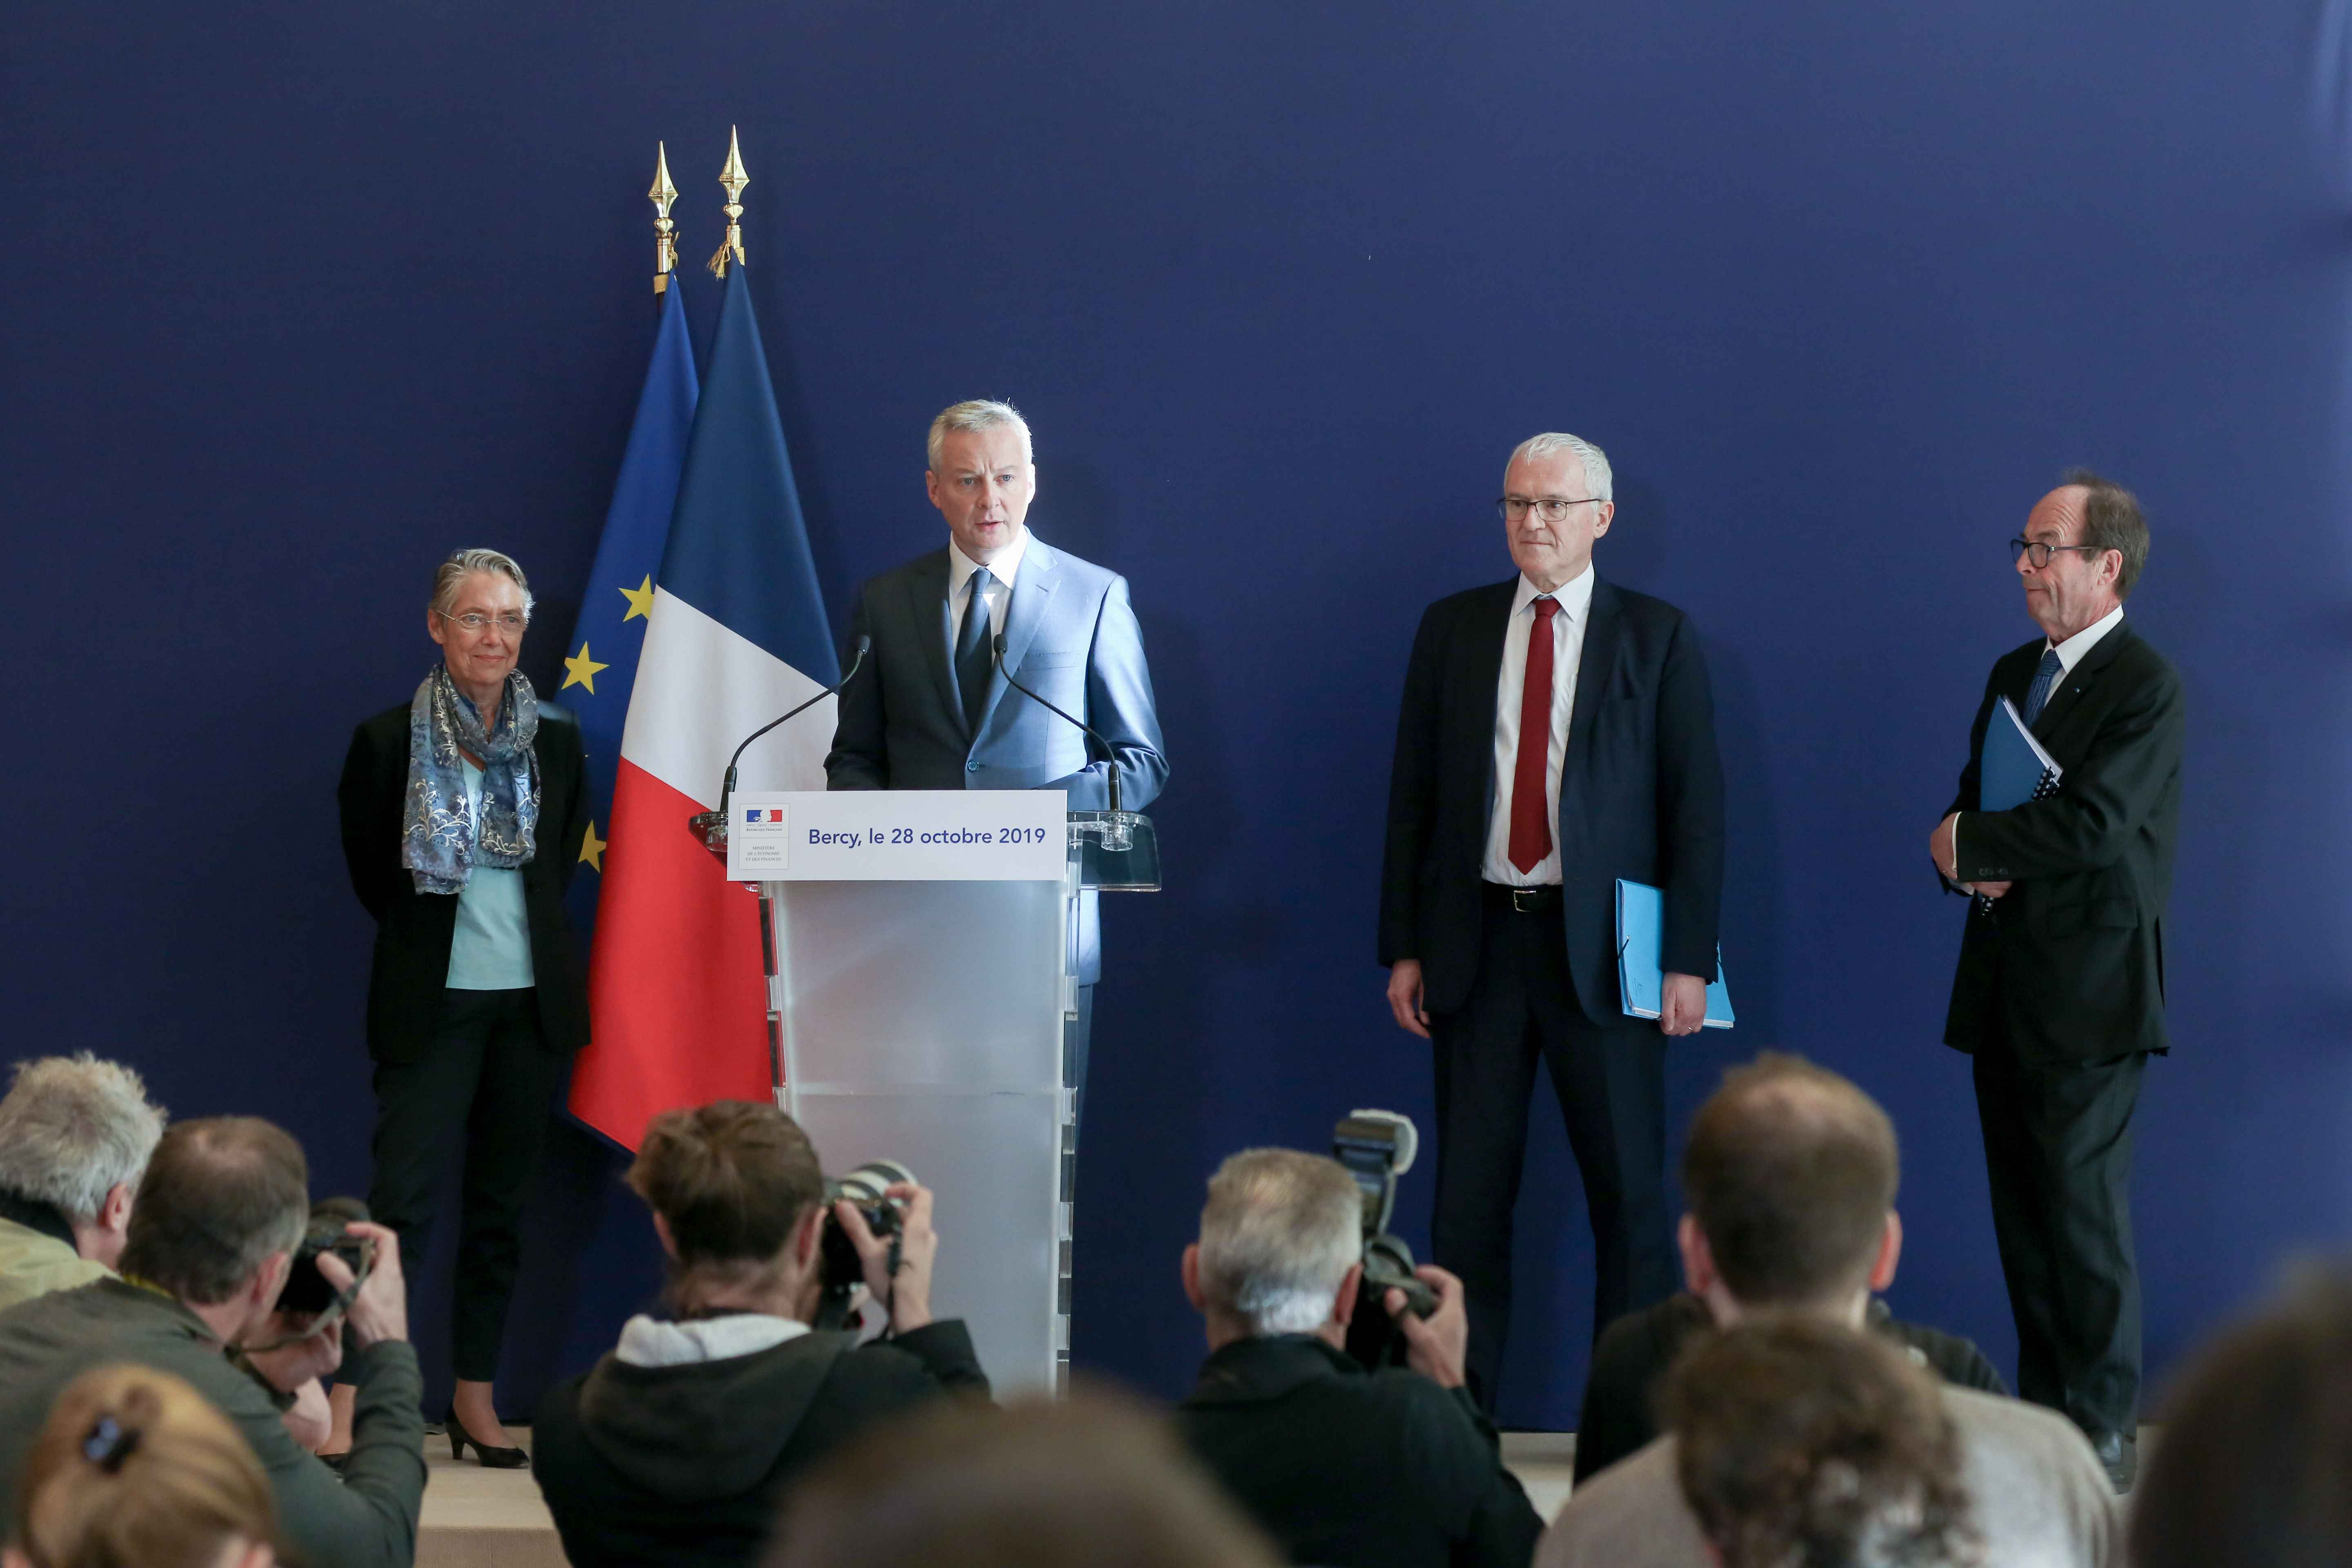 (From L to R) French Minister for the Ecological and Inclusive Transition Elisabeth Borne, French Finance and Economy Minister Bruno Le Maire, French energy giant EDF's CEO Jean-Bernard Levy and report head Jean-Martin Folz give a press conference to prese